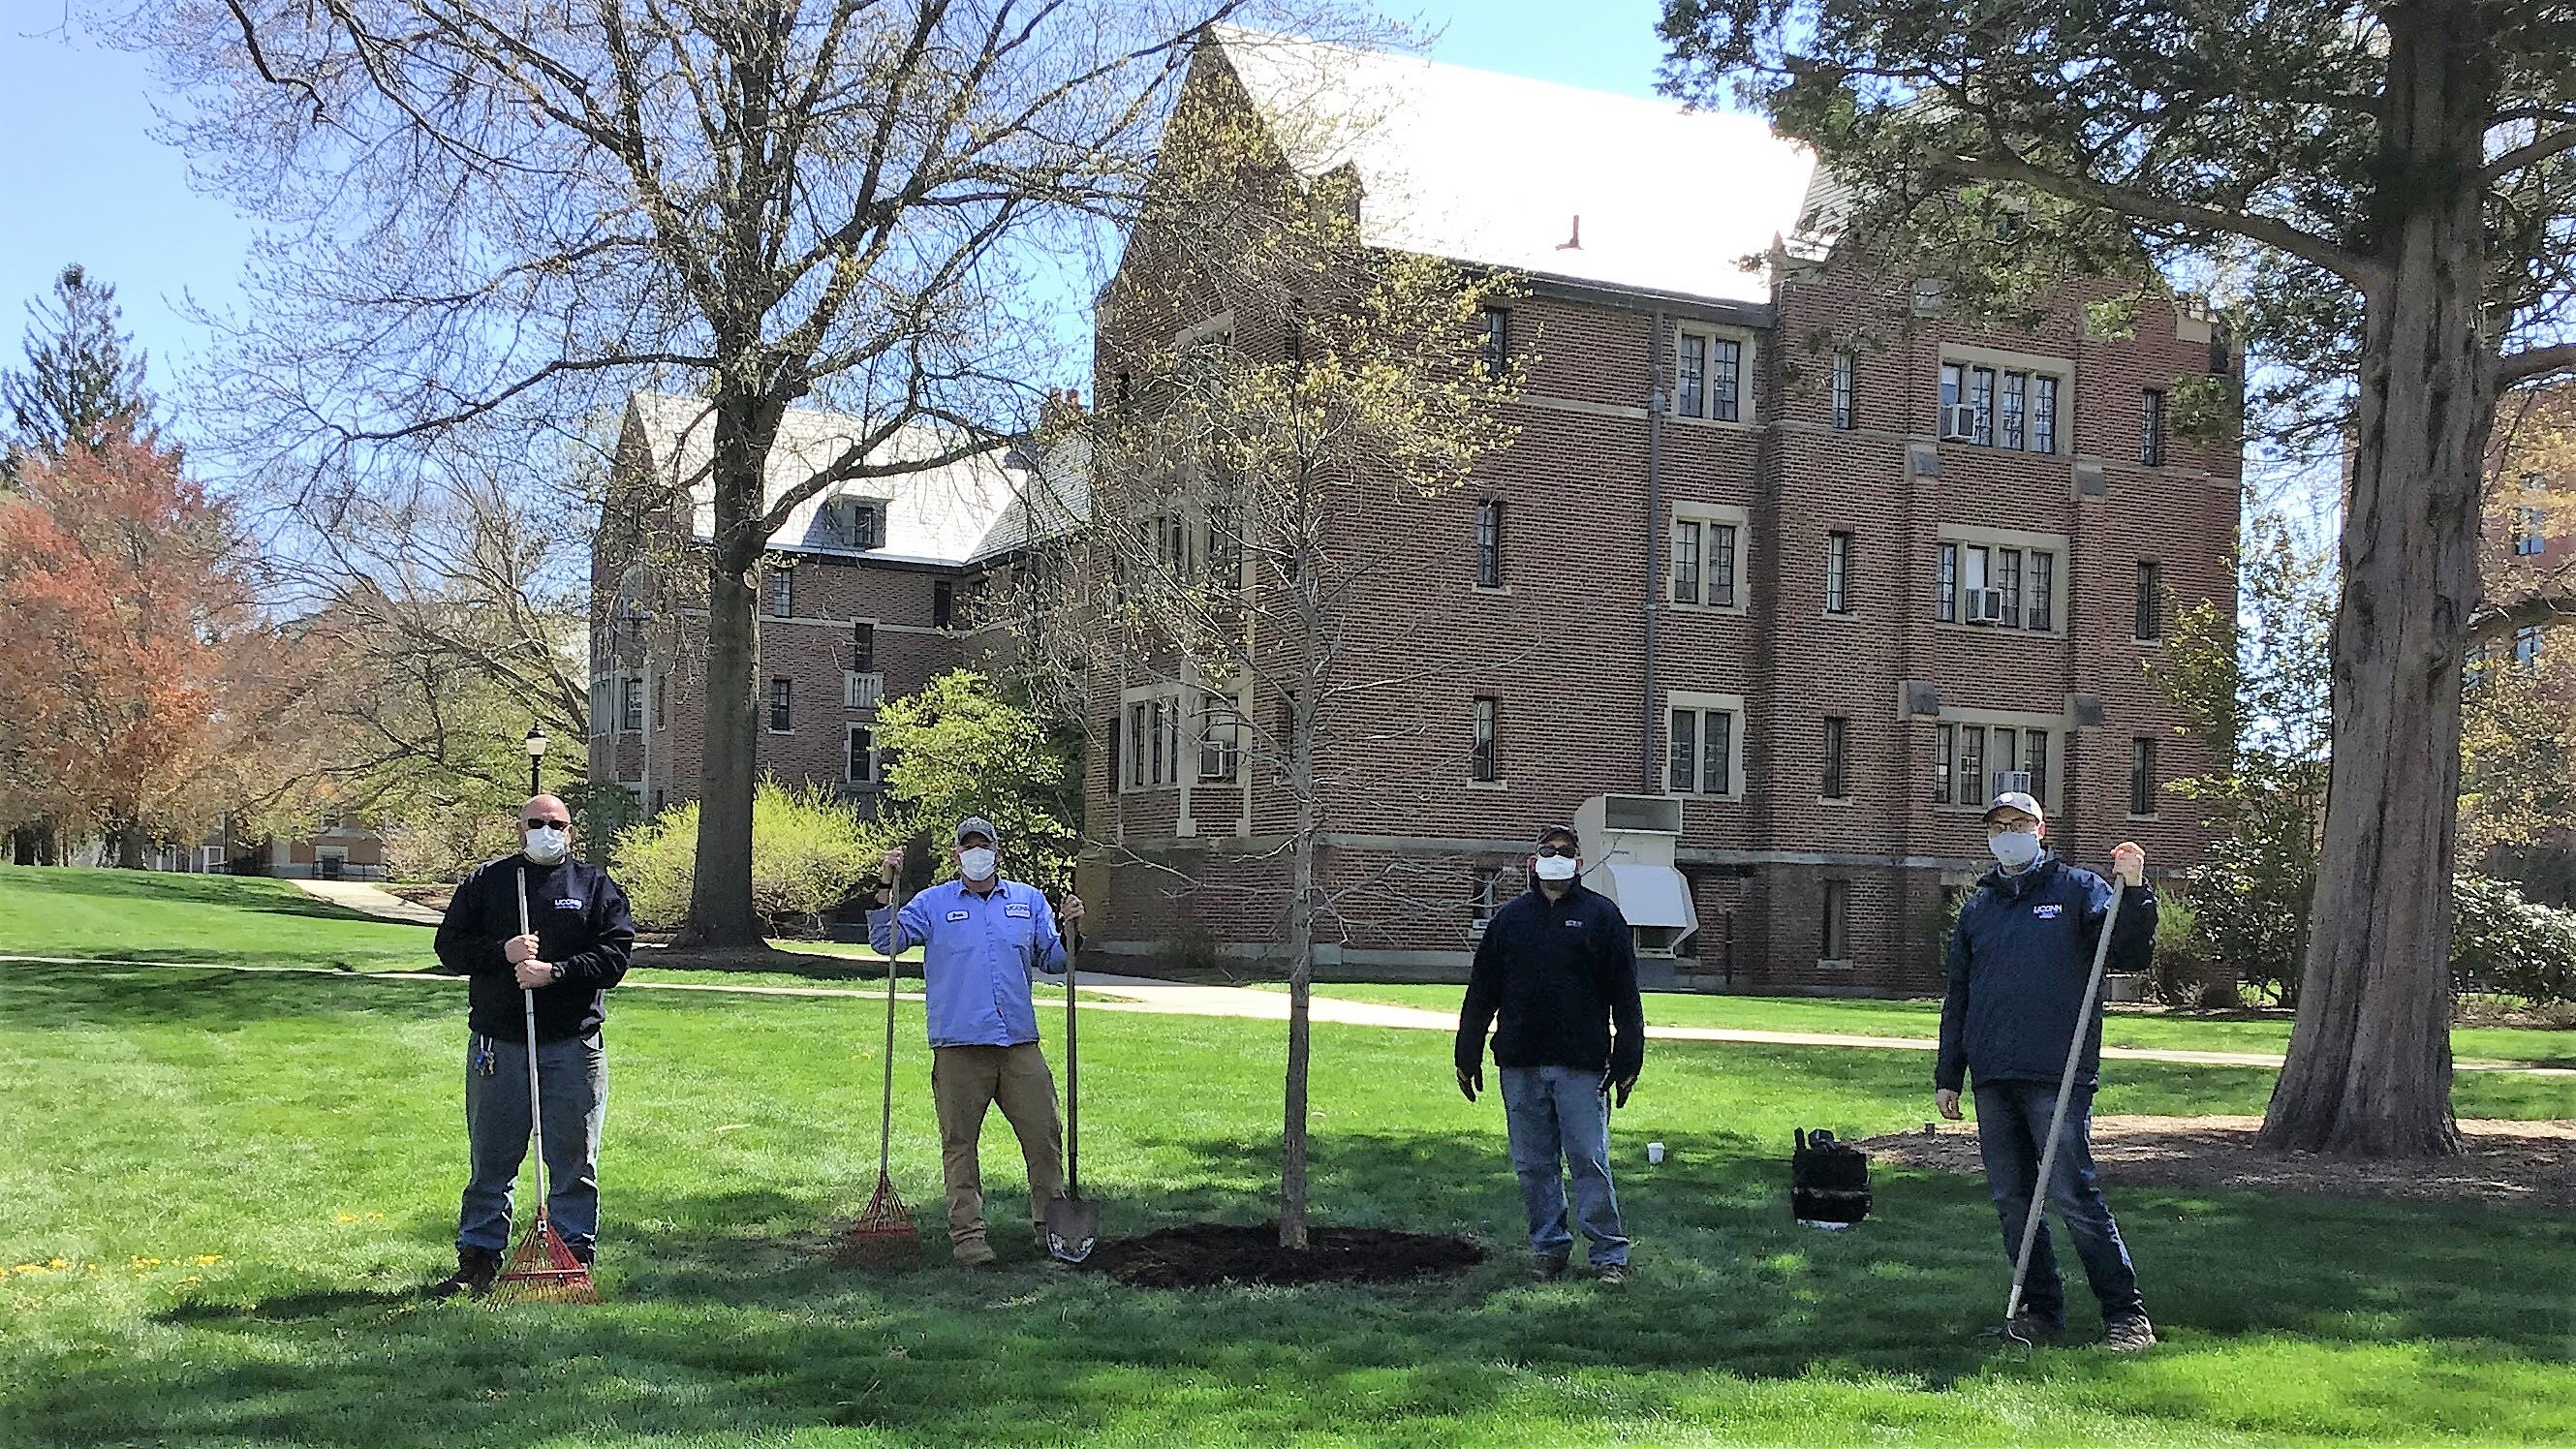 From left to rigth, Mike Kovach (landscape supervisor), Brian Murray (arborist), William Bates (arborist), and Patrick McKee (UConn Office of Sustainability) plant the Class of 2020 tree, an oak.